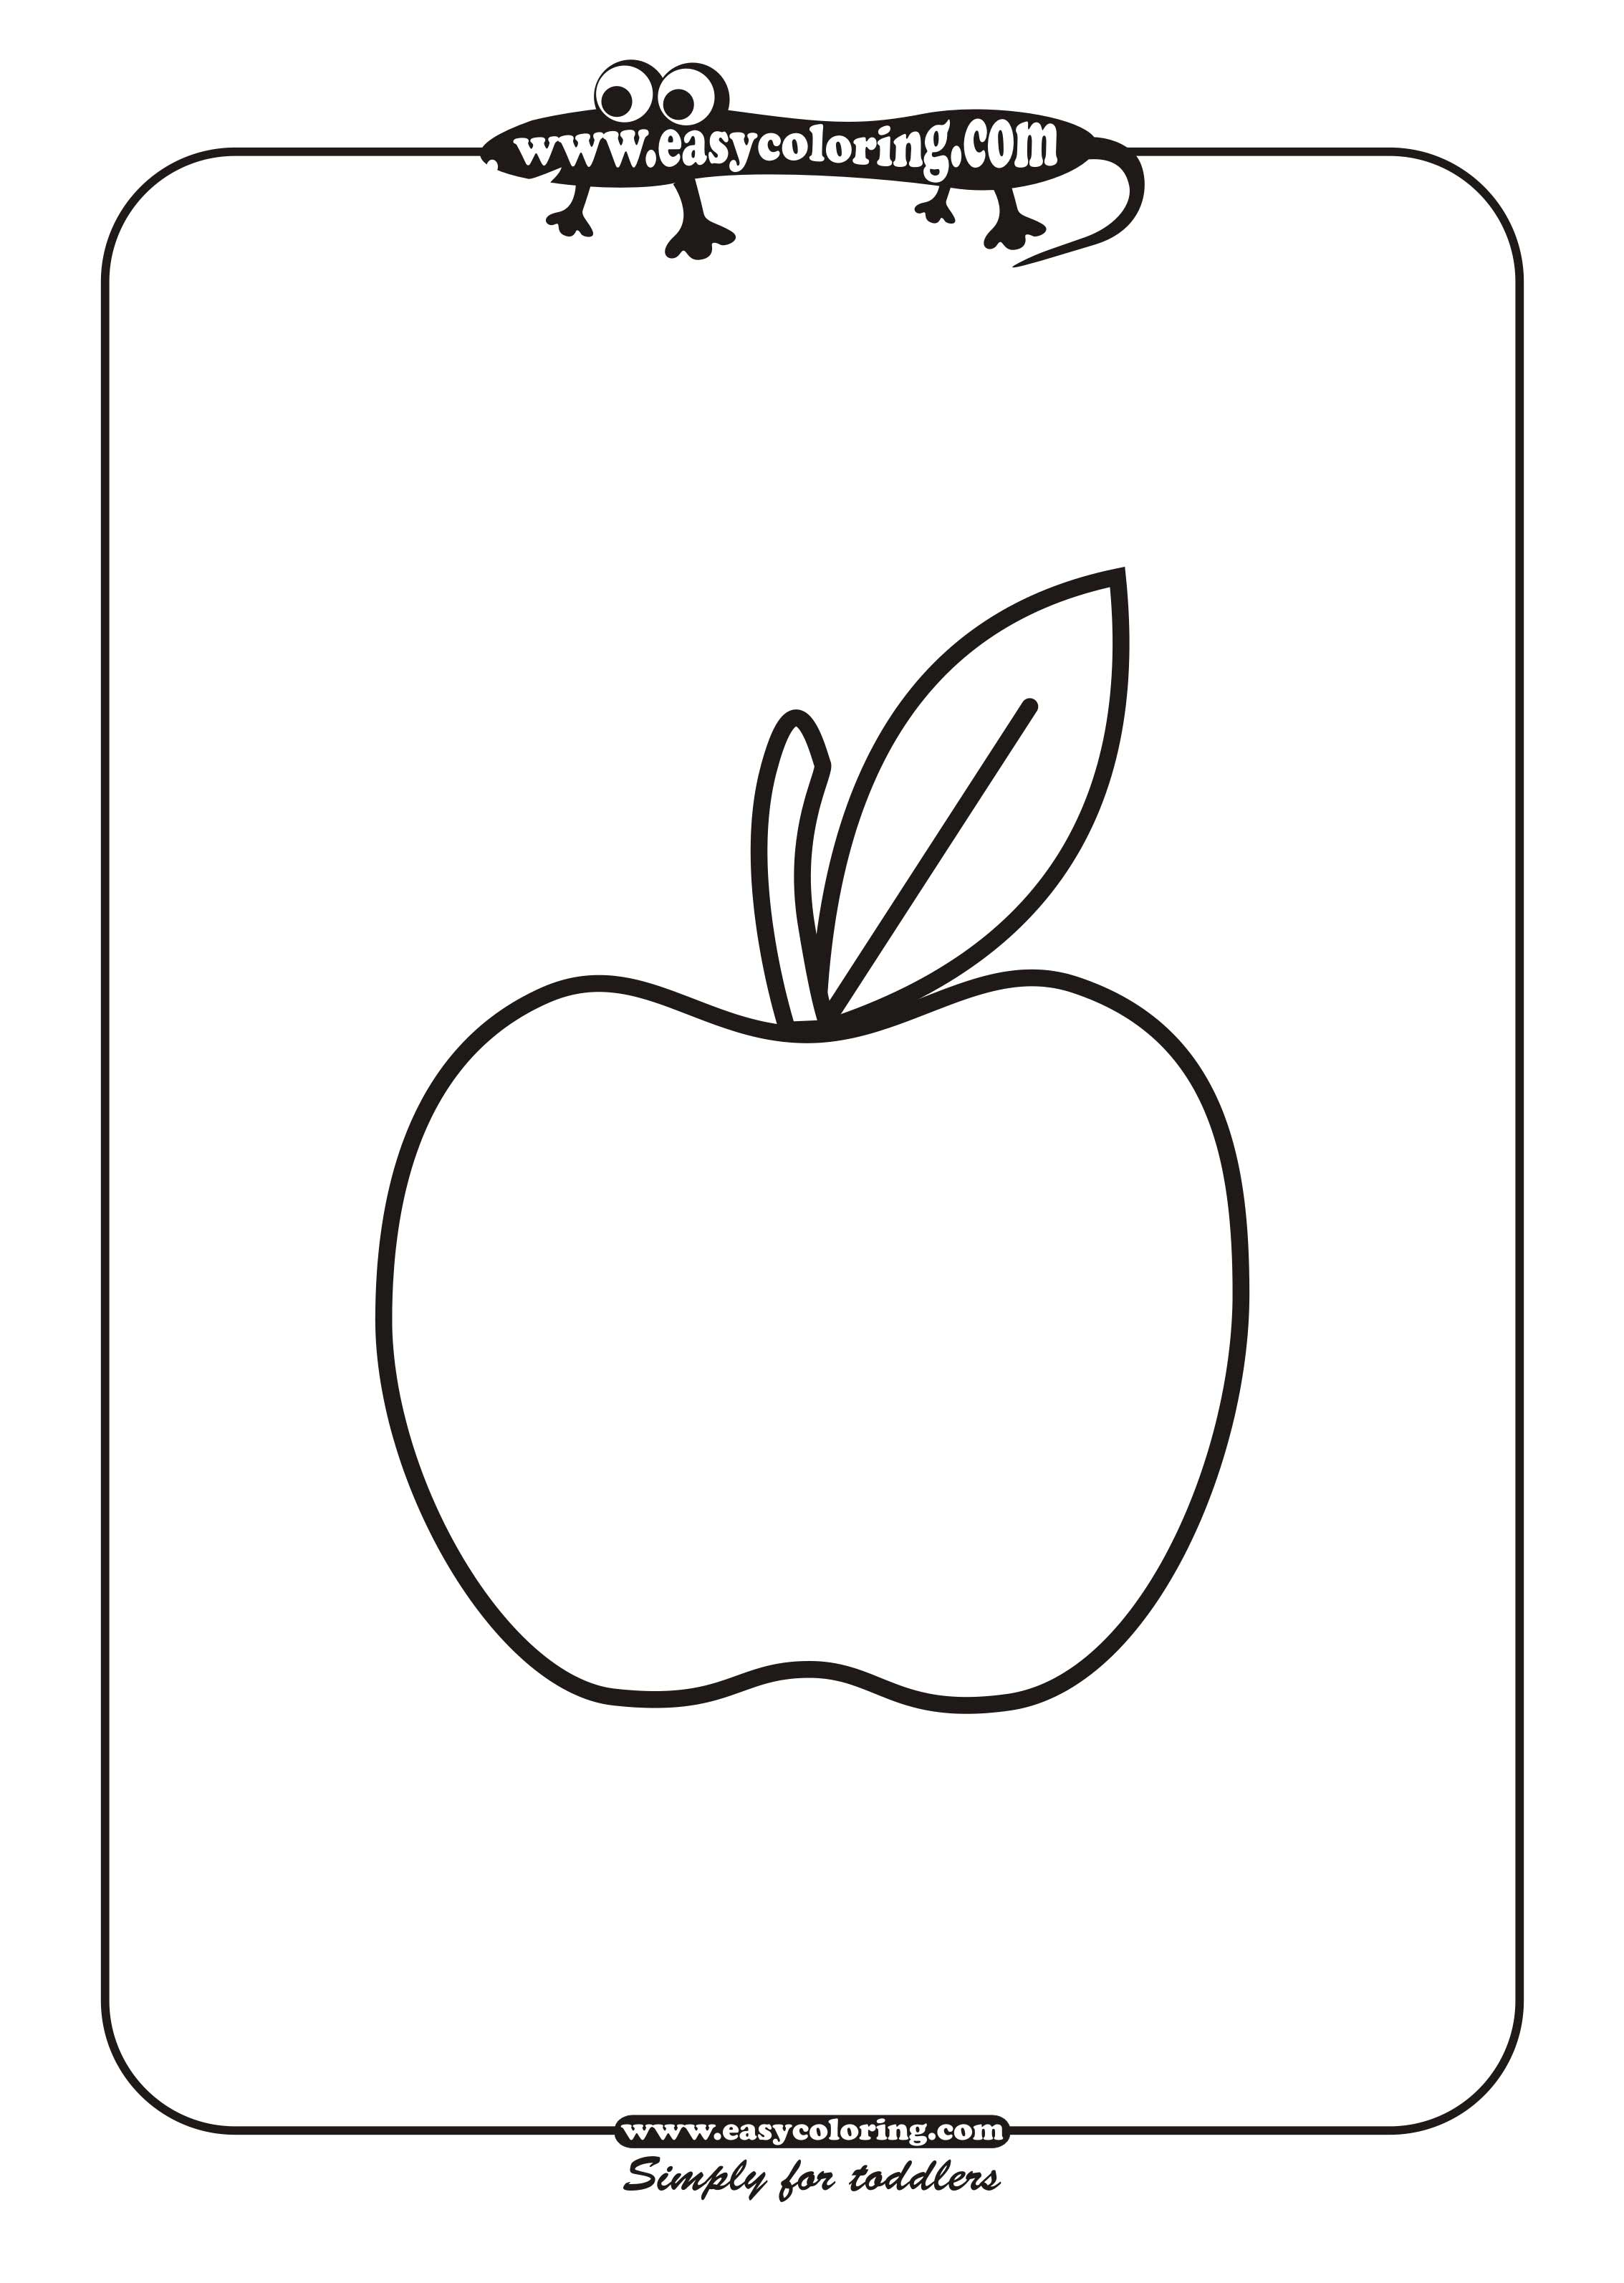 apple simple fruits easy coloring pages for toddlers